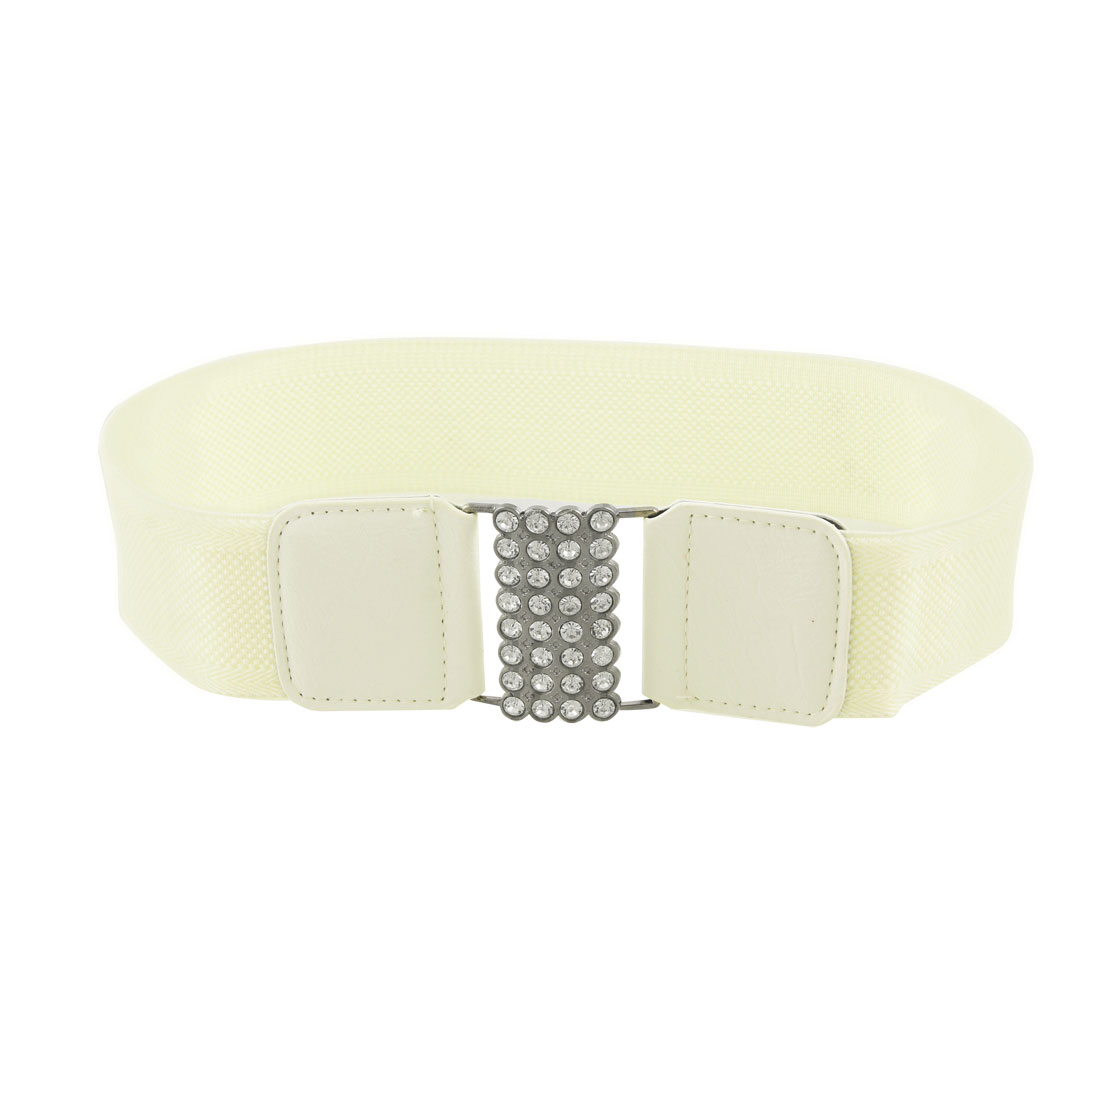 Dark Gray Metal Buckle Elastic Waist Belt Beige for Ladies